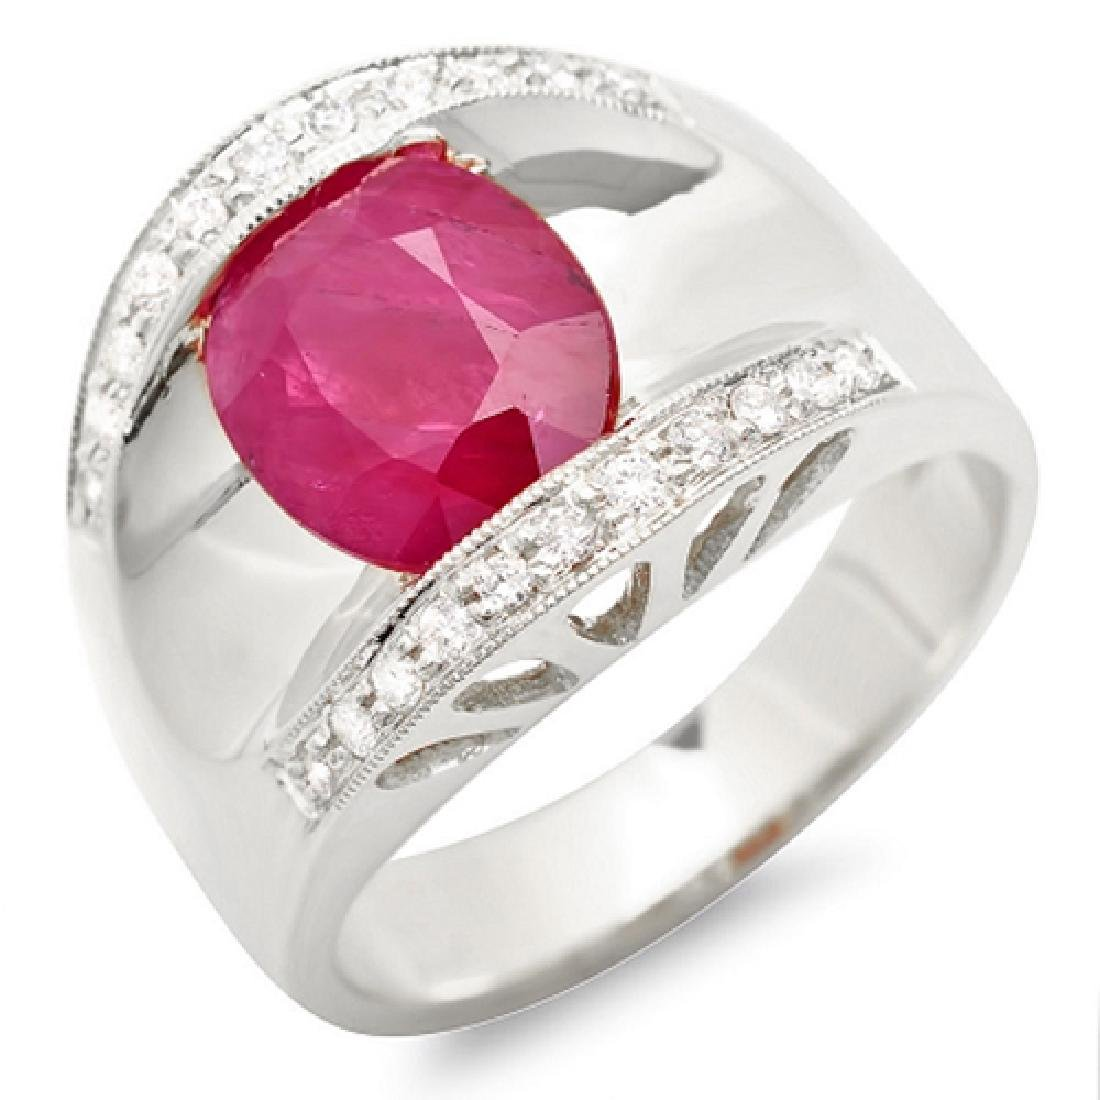 2.87 Carat Natural Ruby 18K Solid White Gold Diamond